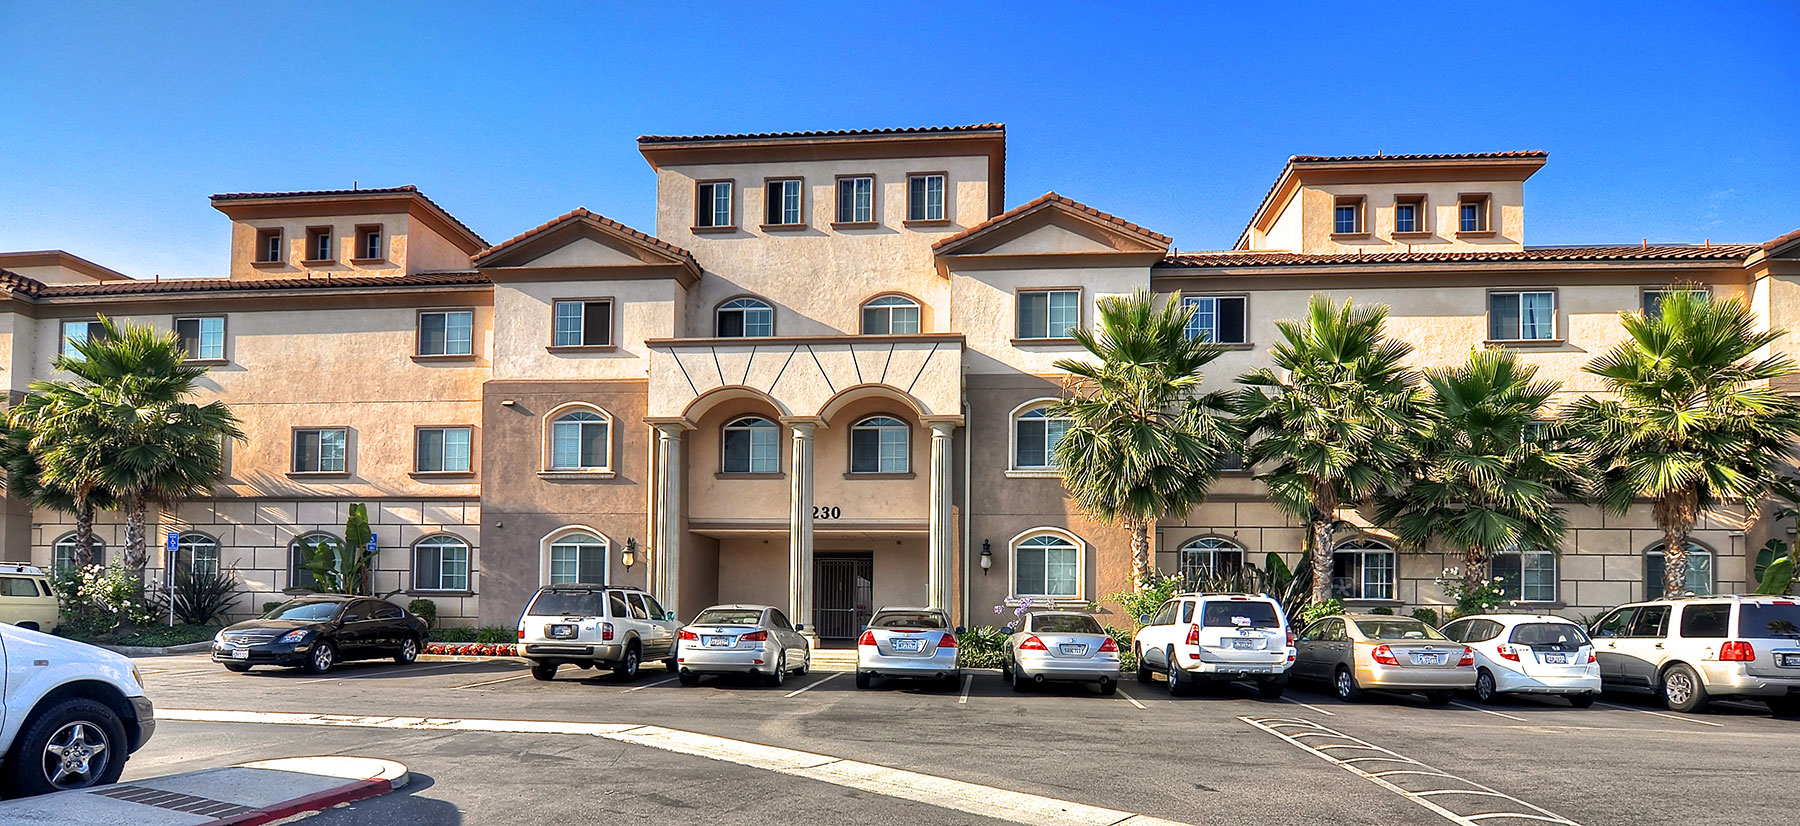 Single Family Home for Sale at 17230 Newhope St # 309 Fountain Valley, California, 92708 United States